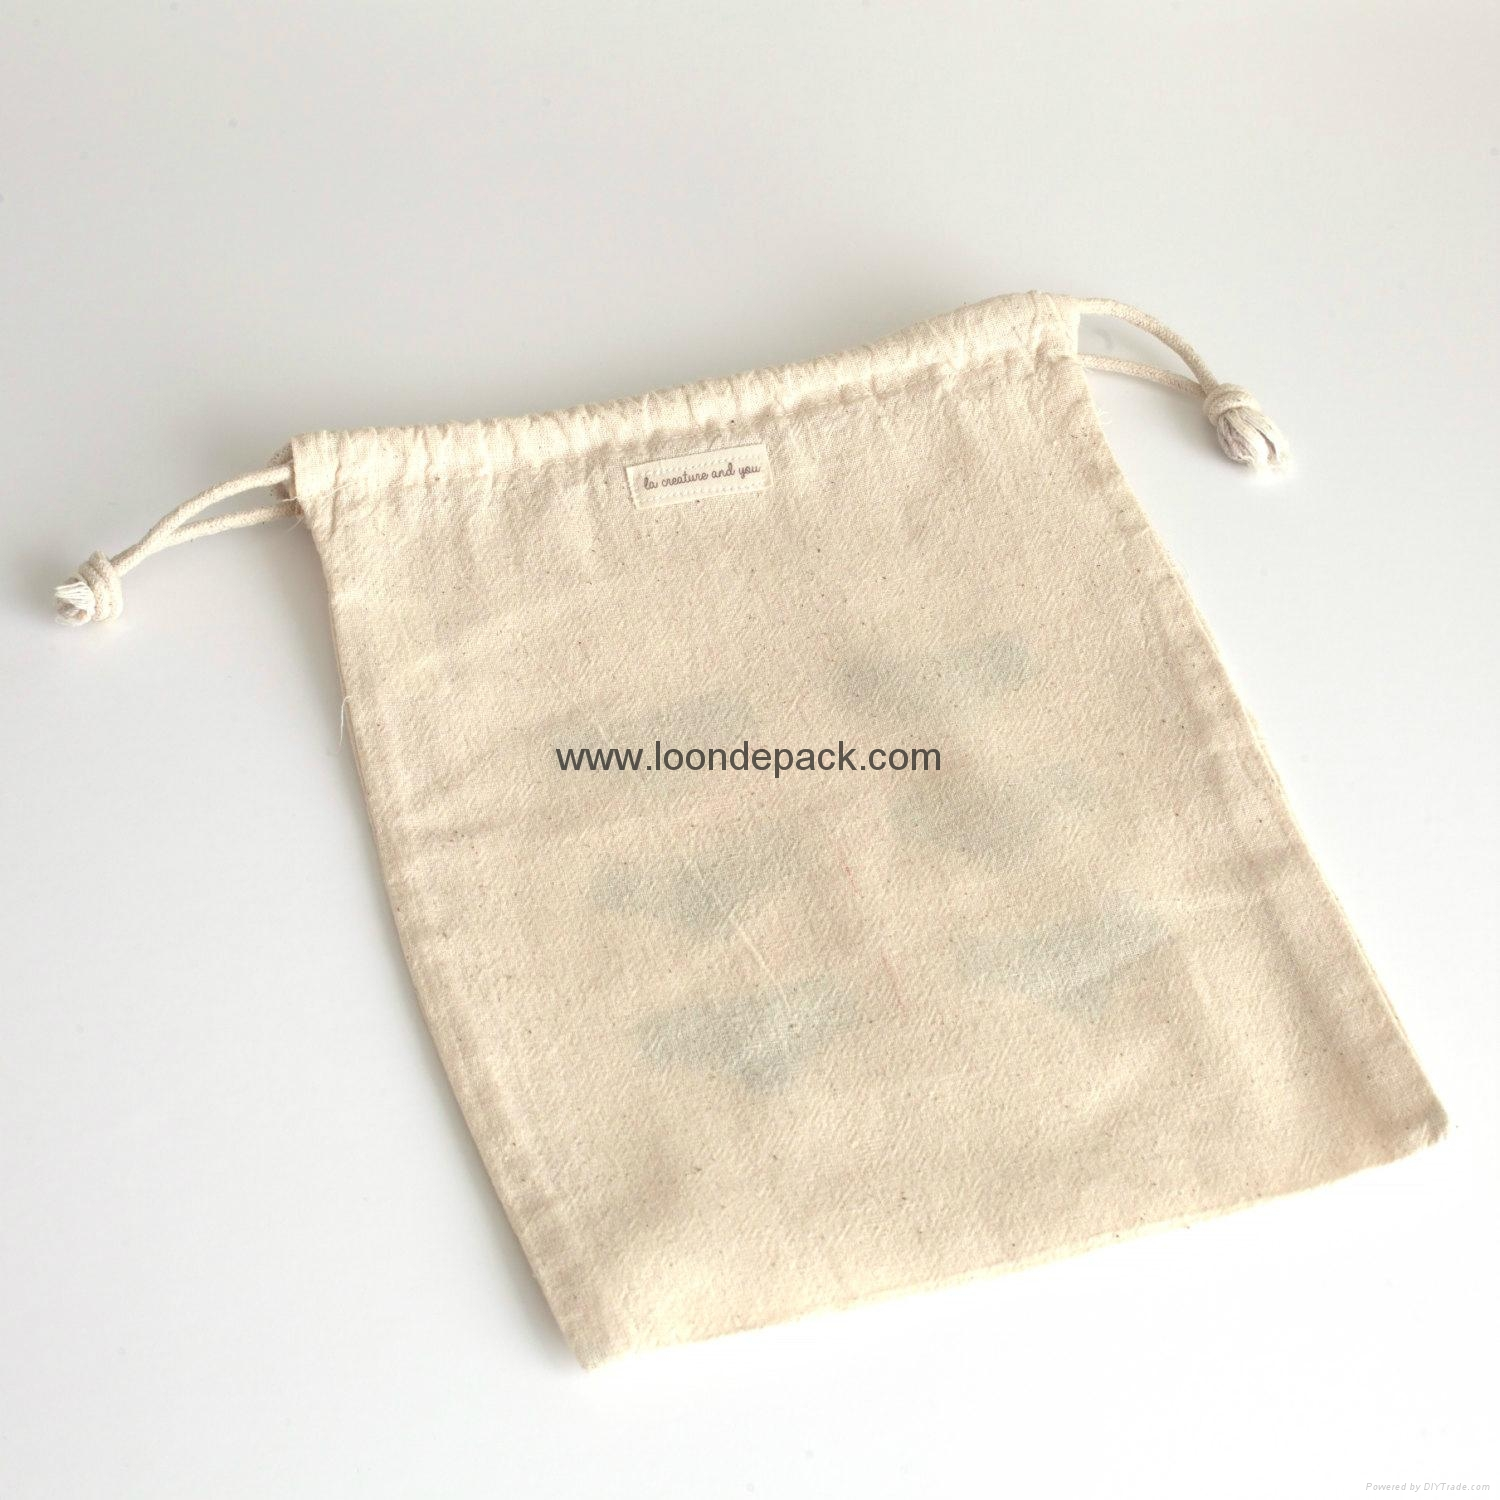 Lingerie bag - hand printed in pink and gold on cotton drawstring ...